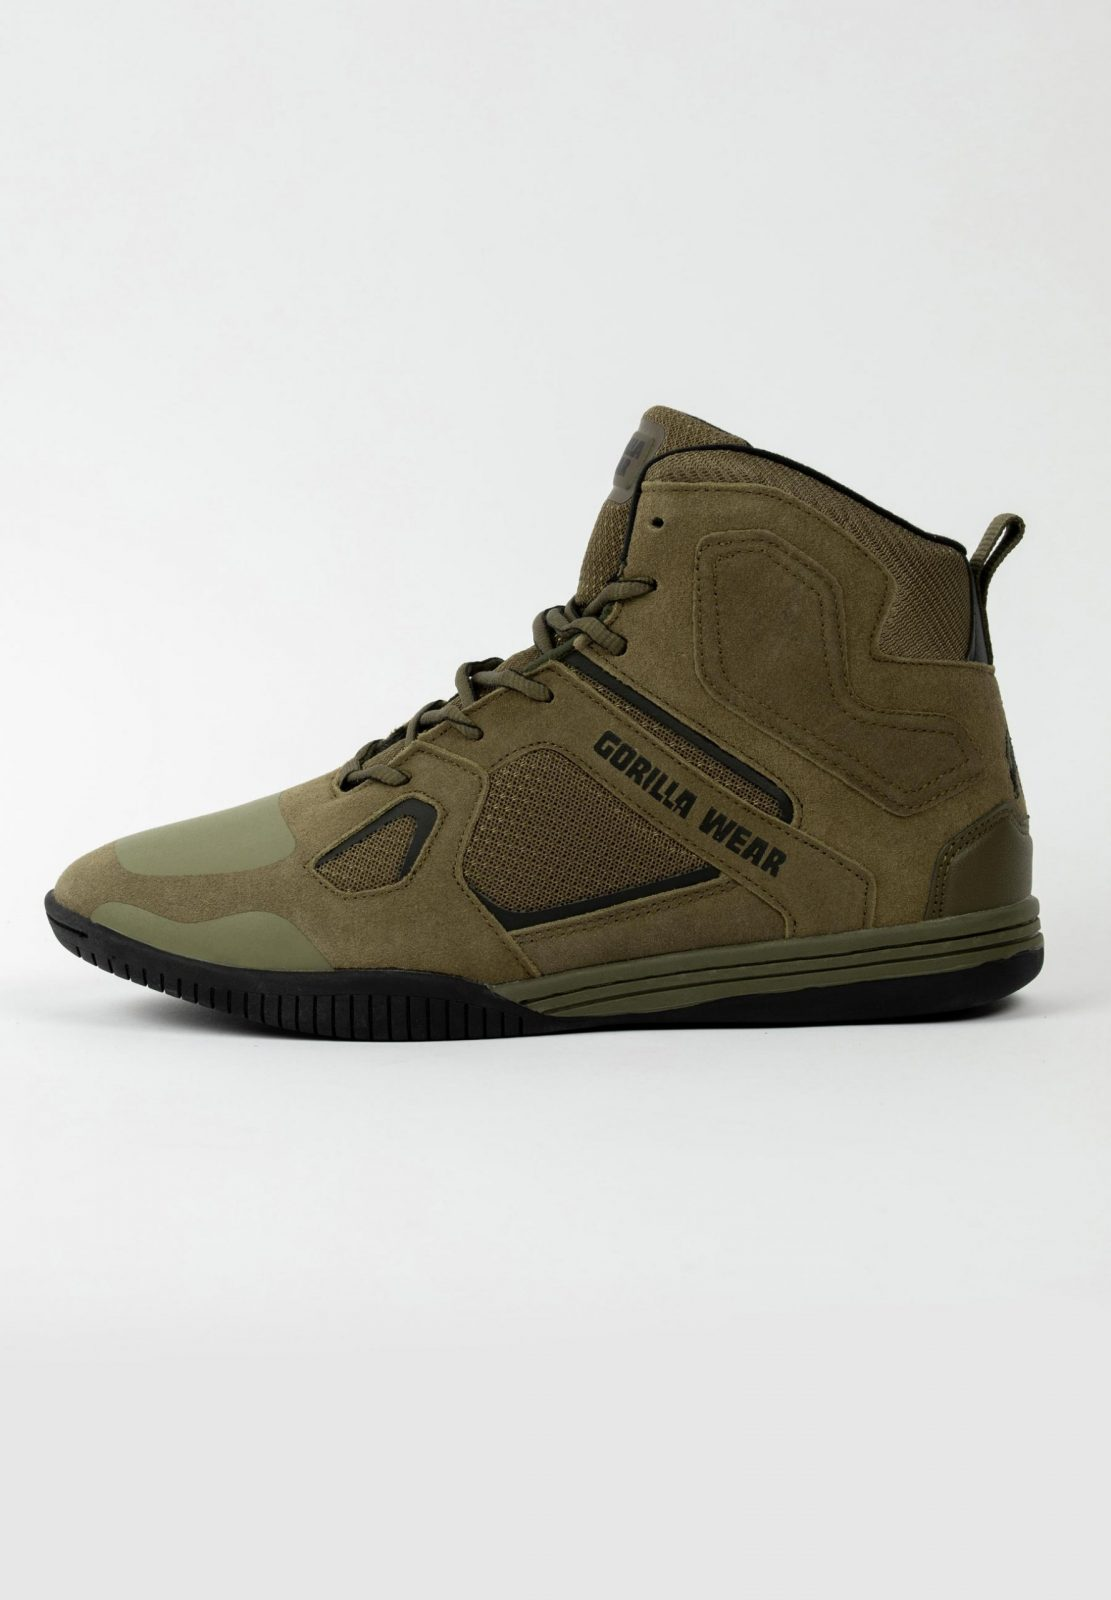 90009409-troy-high-tops-army-green-11